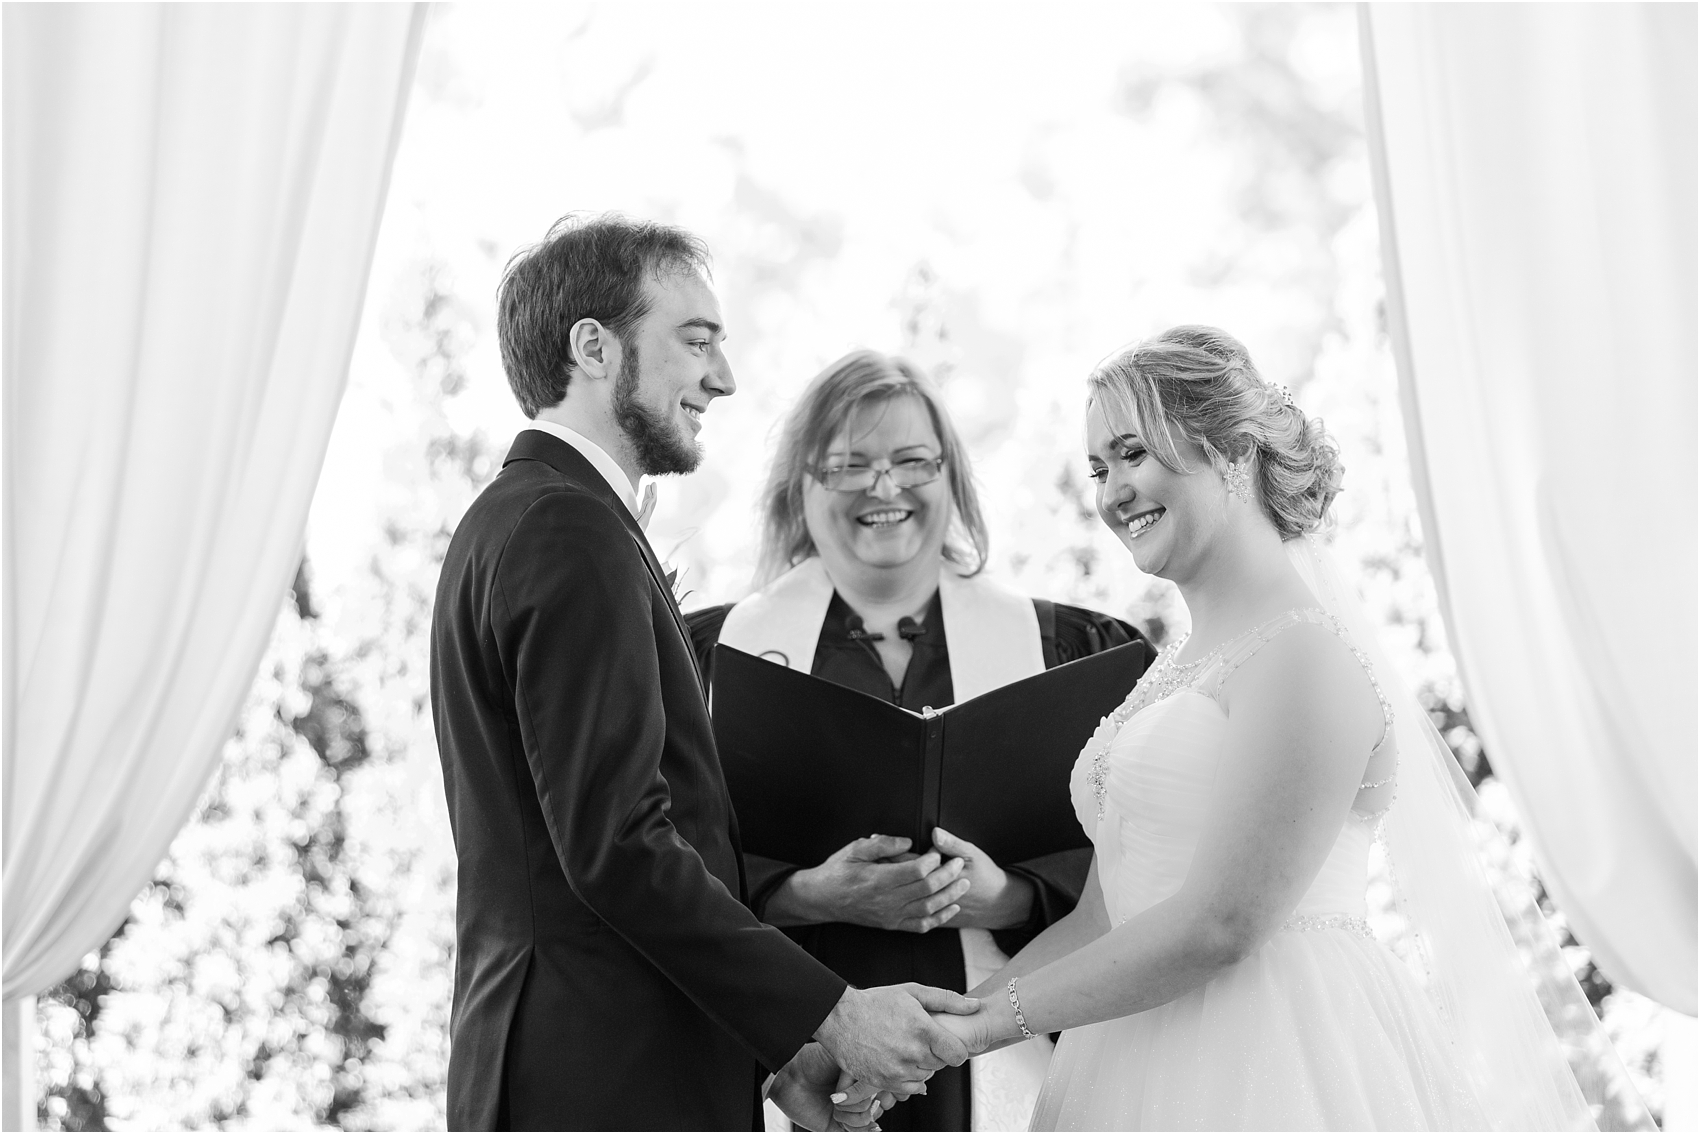 lord-of-the-rings-inspired-wedding-photos-at-crystal-gardens-in-howell-mi-by-courtney-carolyn-photography_0046.jpg